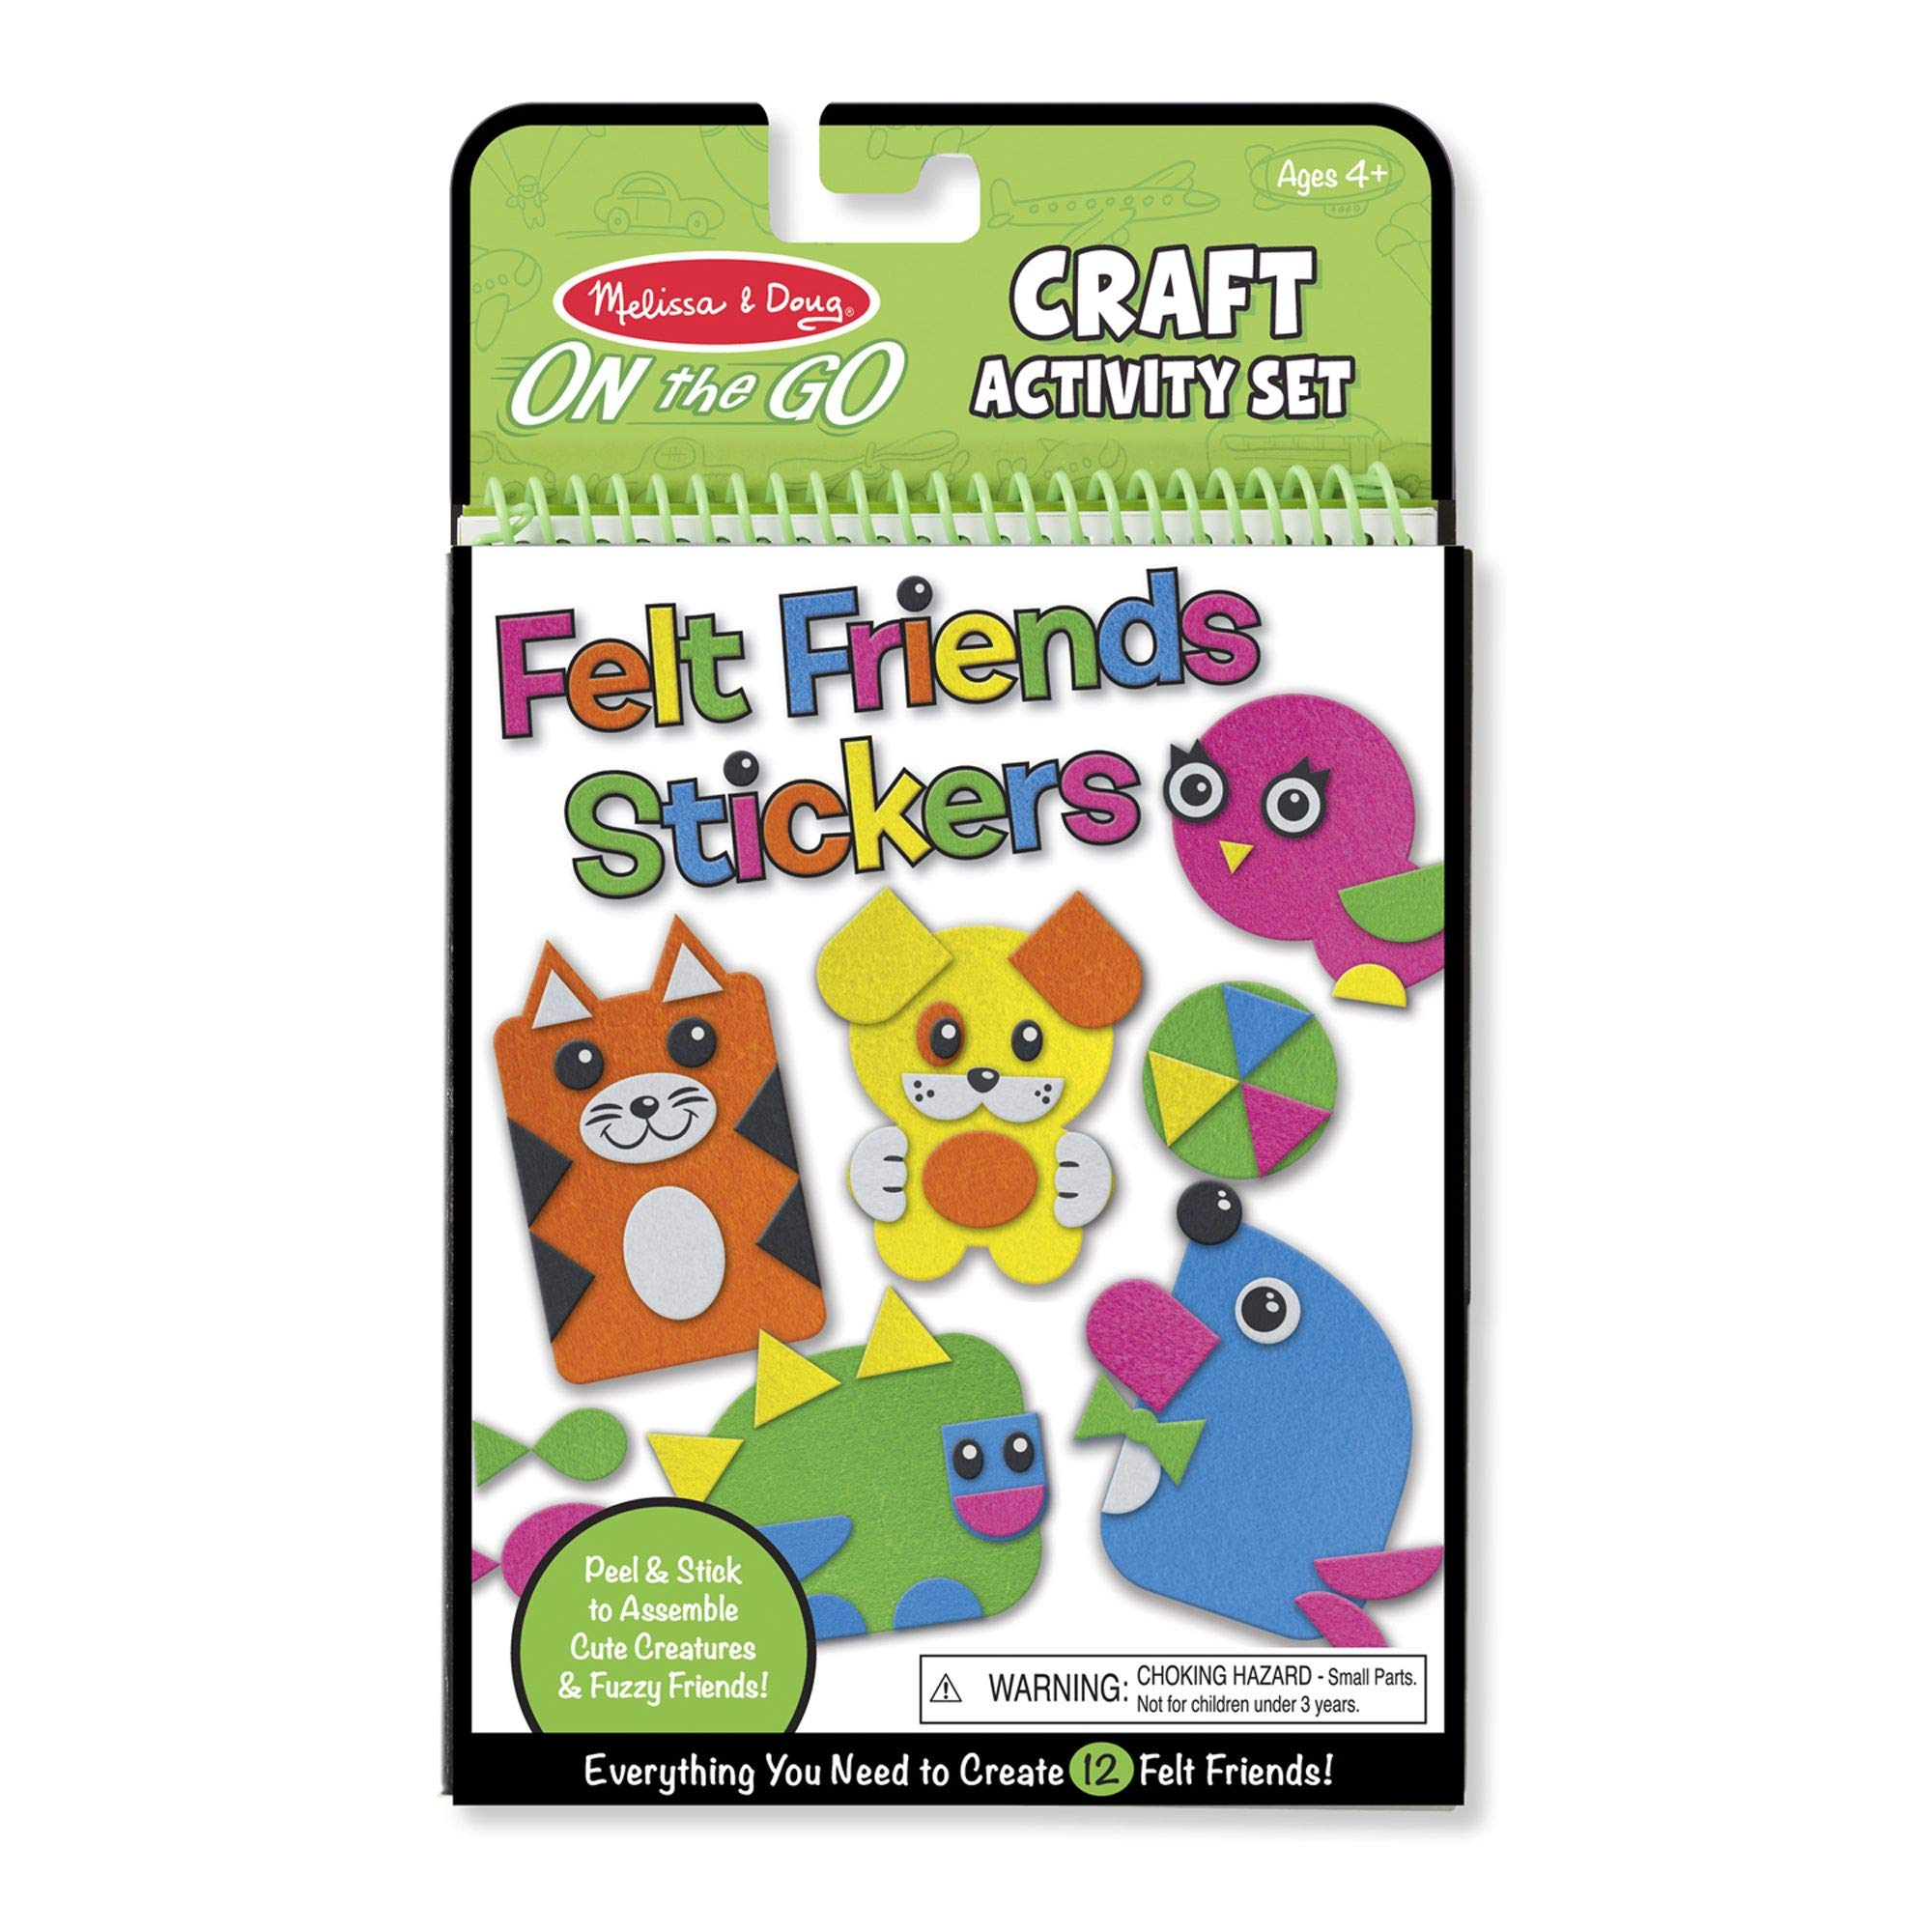 Melissa & Doug On-the-Go Felt Friends Craft Activity Set, Step-By-Step Illustrated Instructions, Easy to Store, 188 Felt Stickers, 10'''' H x 6'''' W x 0.4'''' L